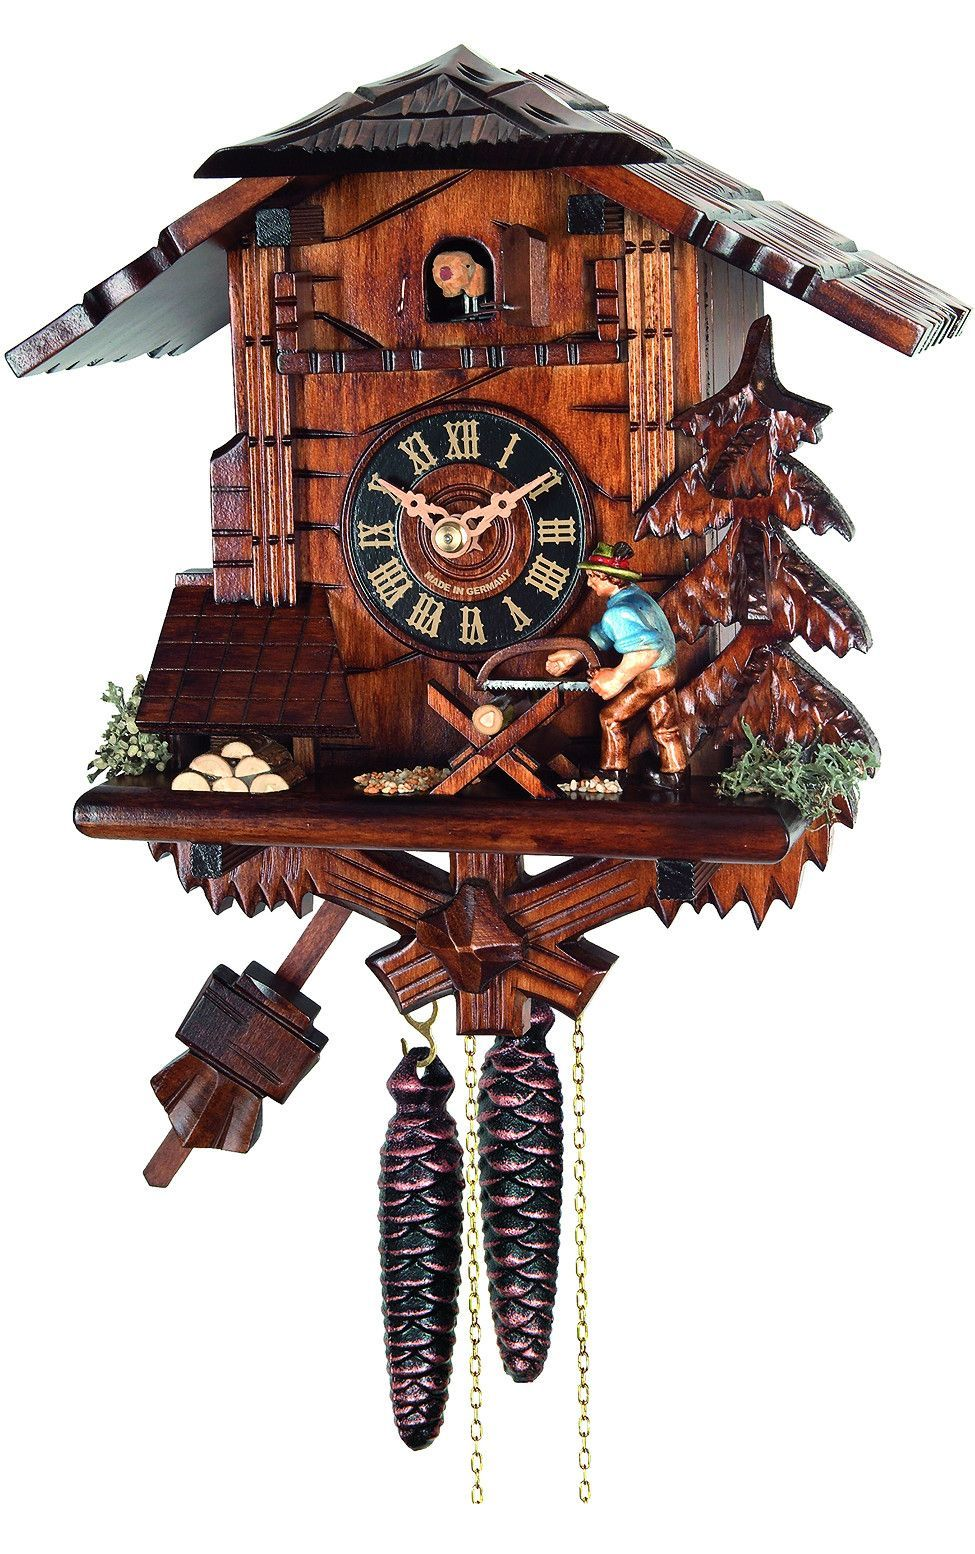 Unusual Cuckoo Clocks engstler chalet woodcutter weight-driven cuckoo clock 1-day 4358